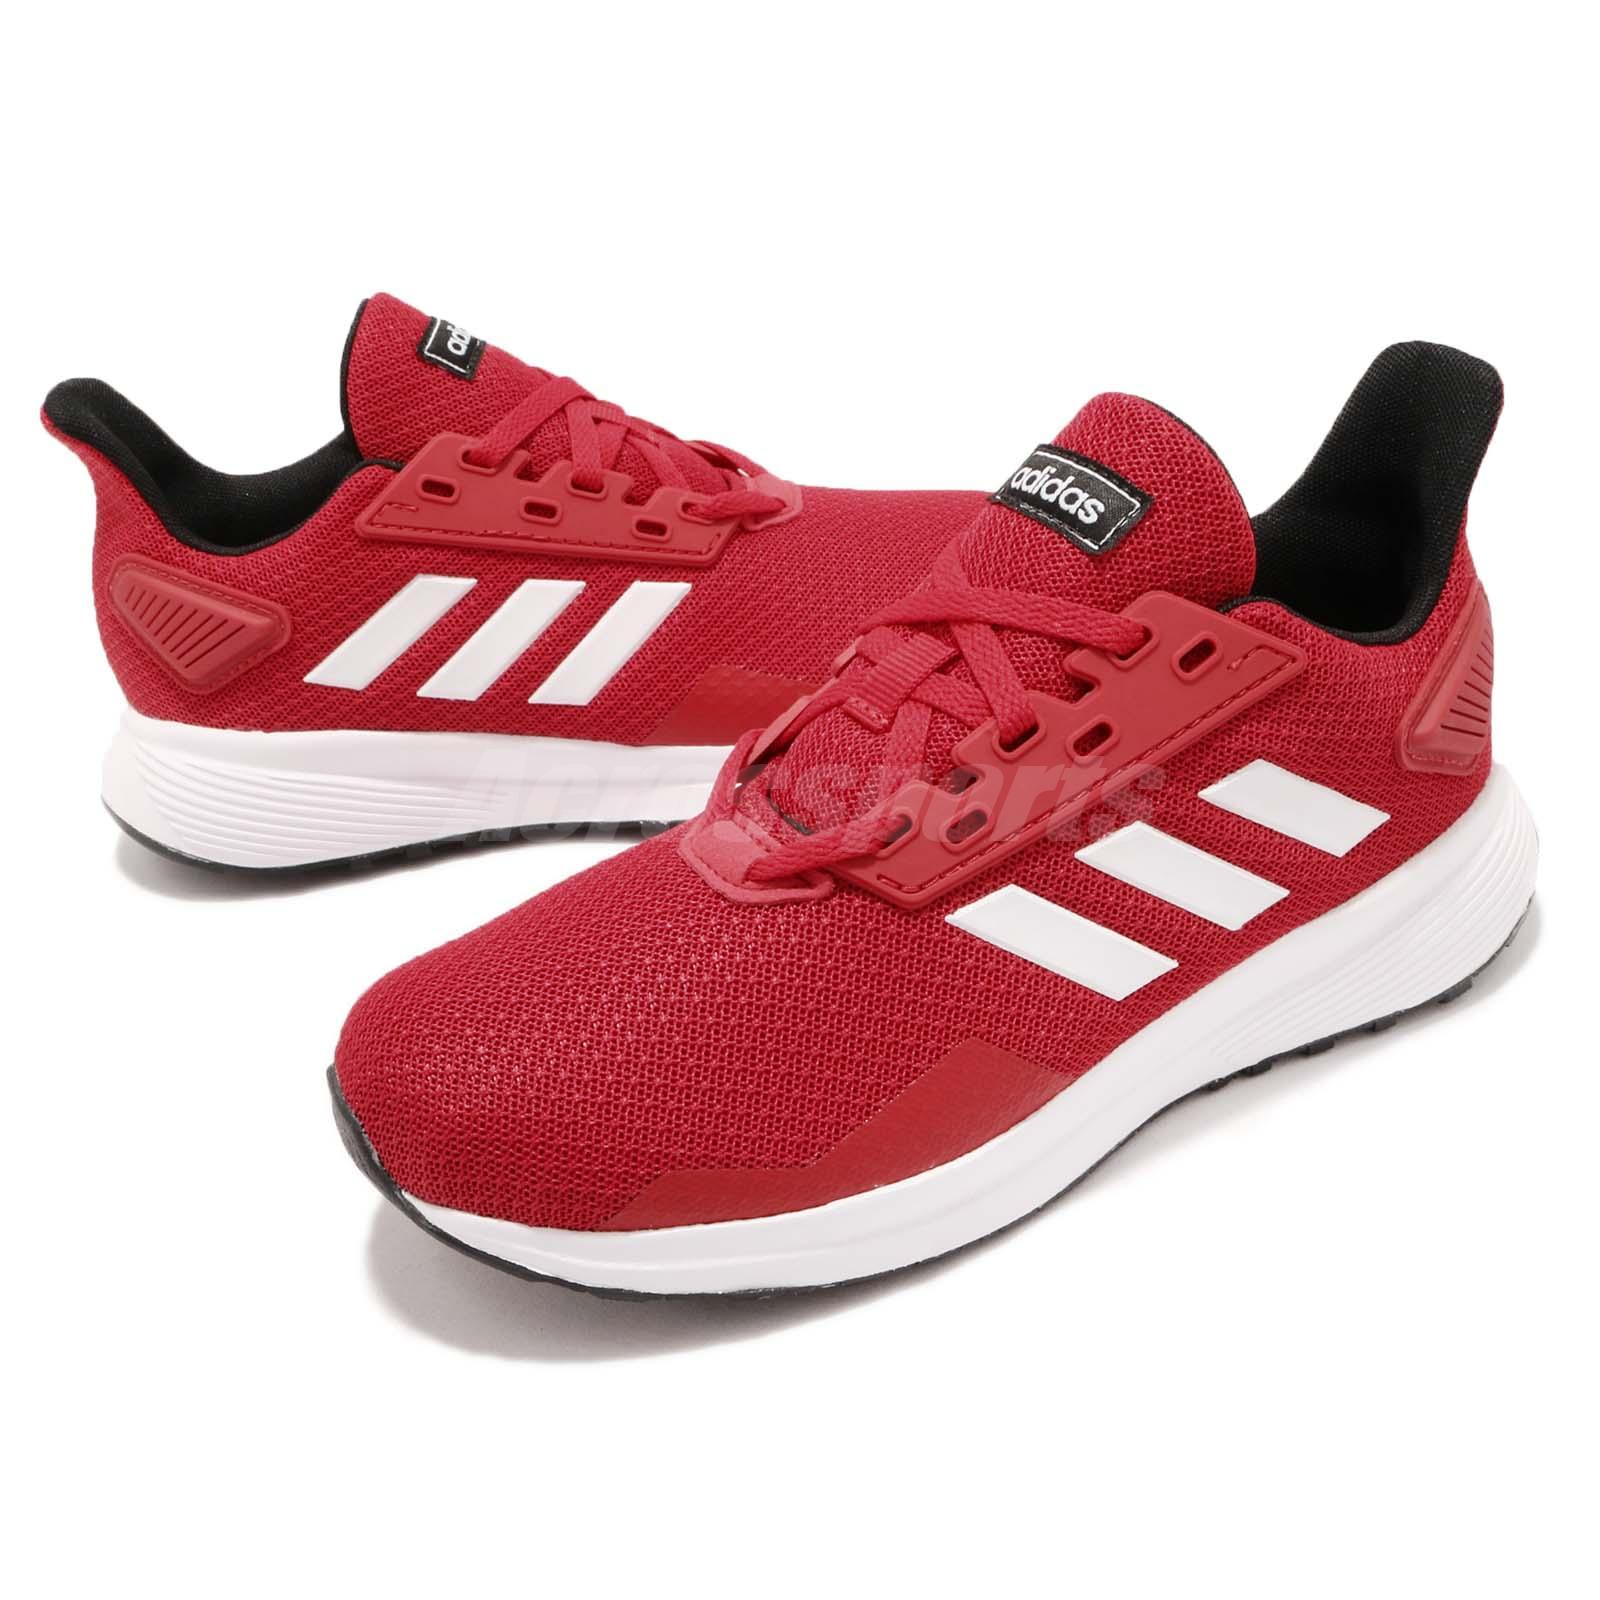 newest 59d9c 9bc56 Details about adidas Duramo 9 K Scarlet Red White Black Kid Junior Running  Shoe Sneaker BB7059